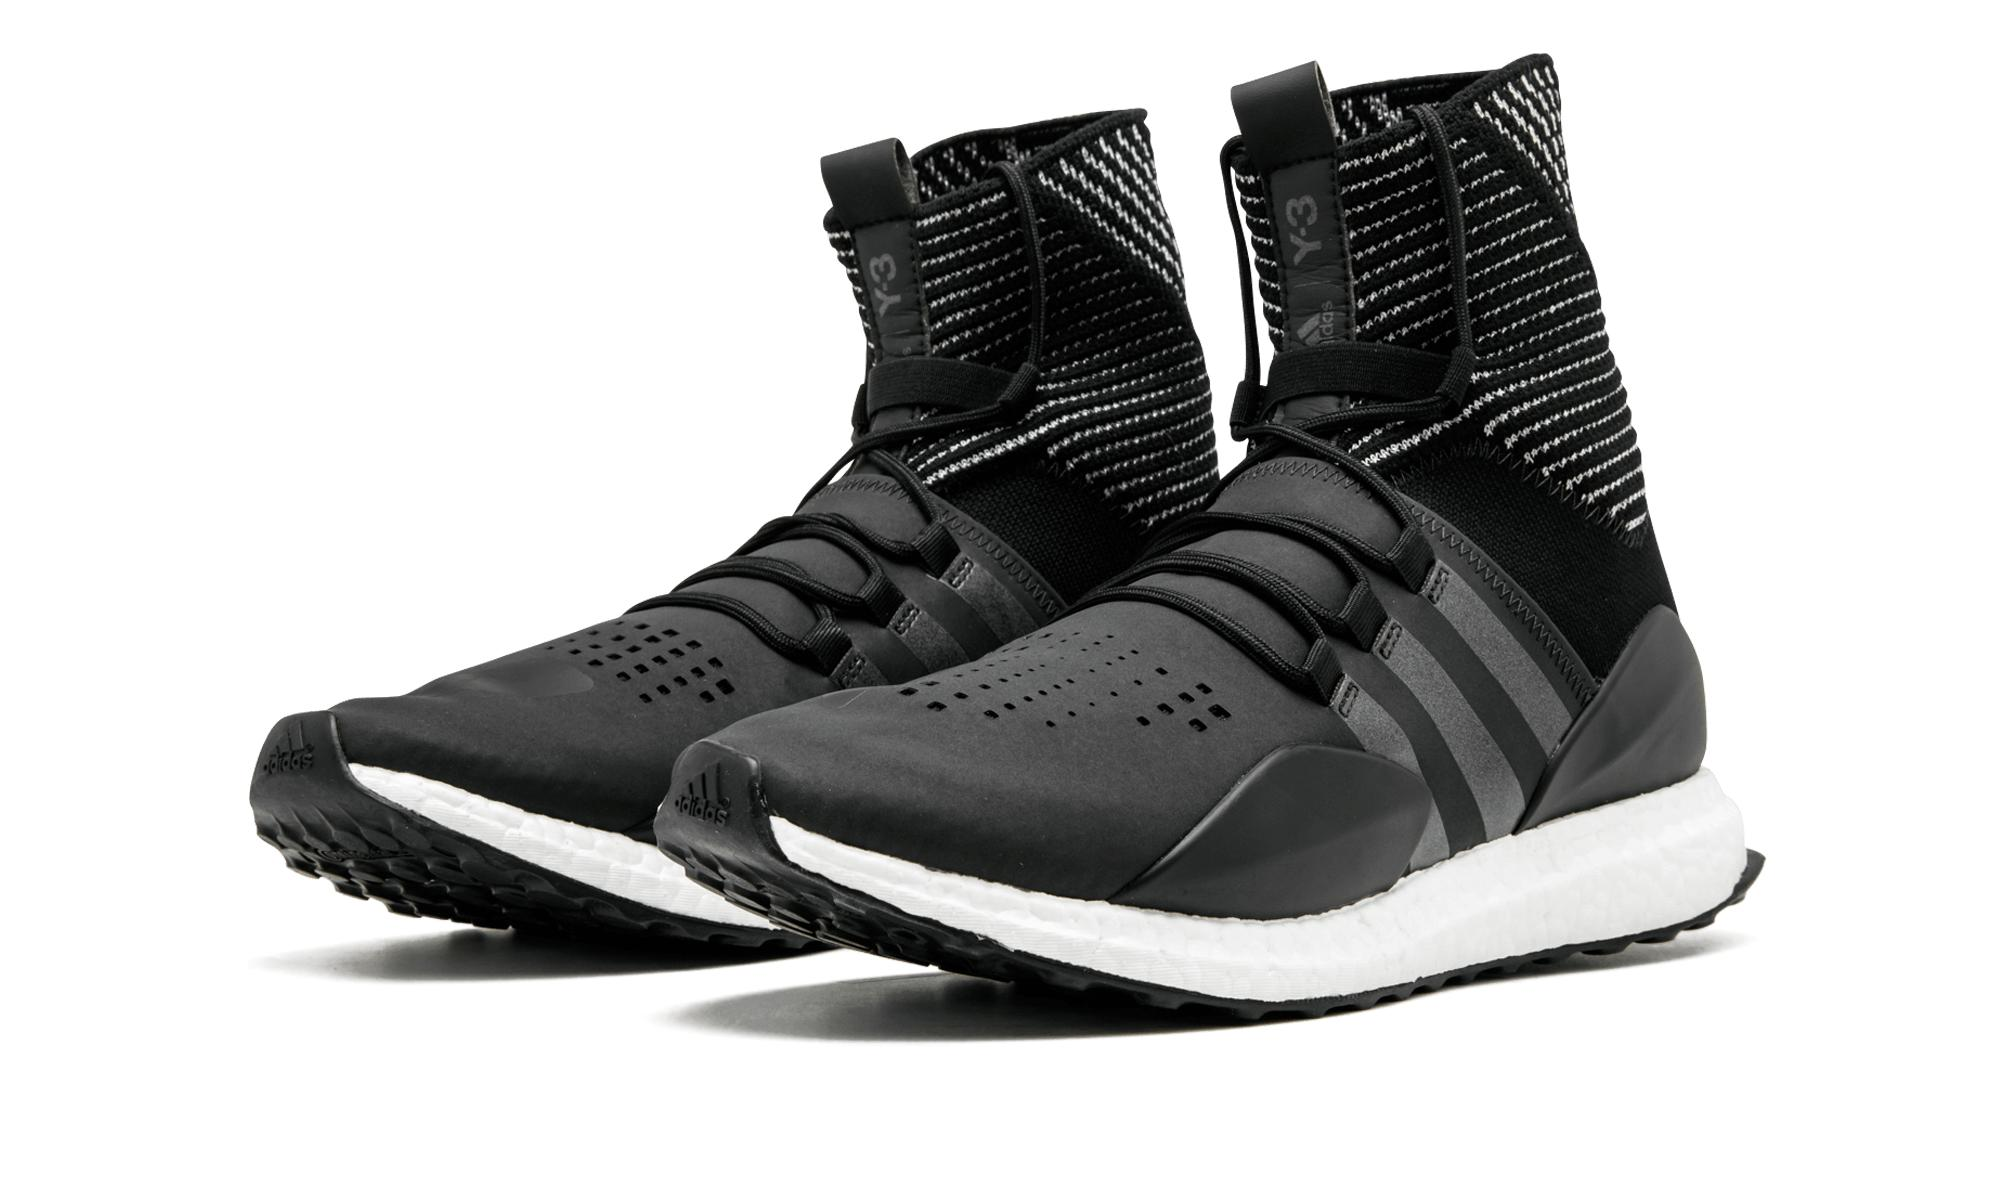 Lyst - adidas Y-3s Approach Reflect in Black for Men d352c054a